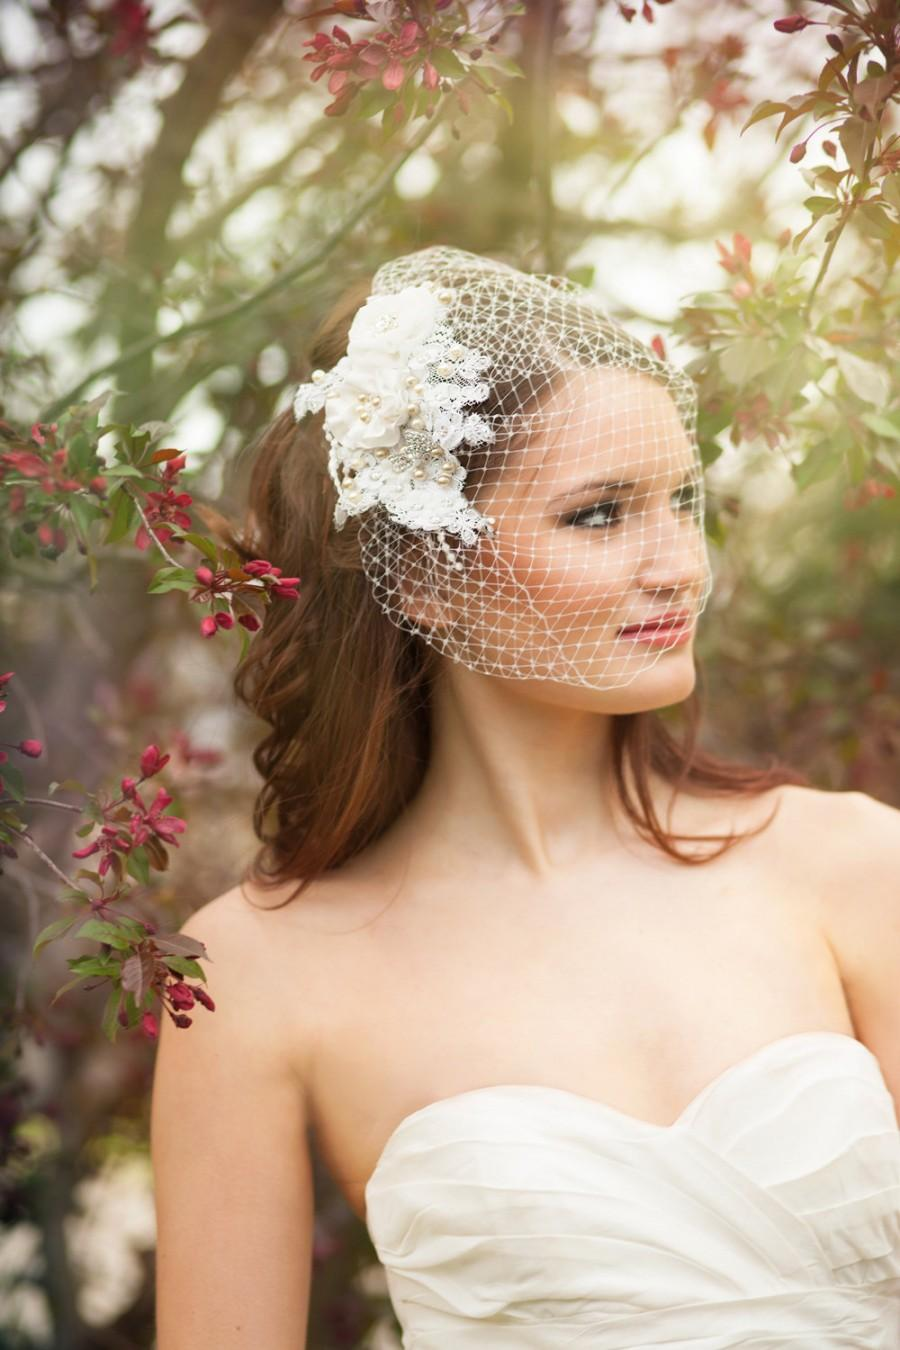 Wedding - Embellished Birdcage Veil with Alencon Lace, Flowers, Pearls, and Crystals - Amsterdam